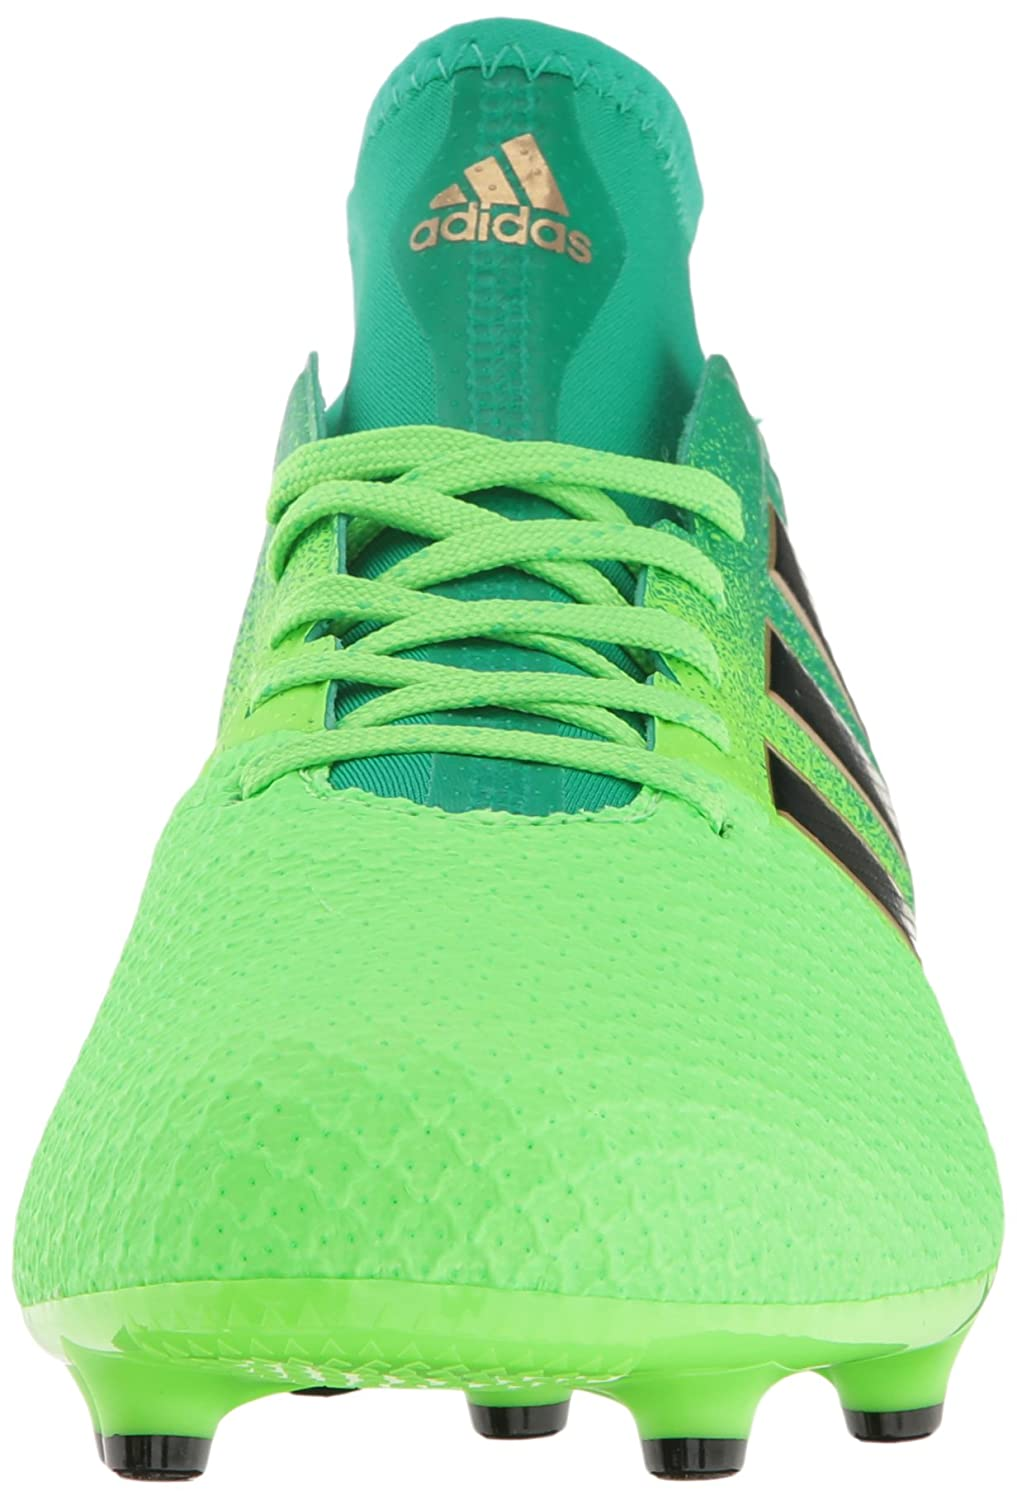 f0d90f757 Amazon.com  adidas Men s Ace 17.3 Primemesh Firm Ground Cleats Soccer Shoe